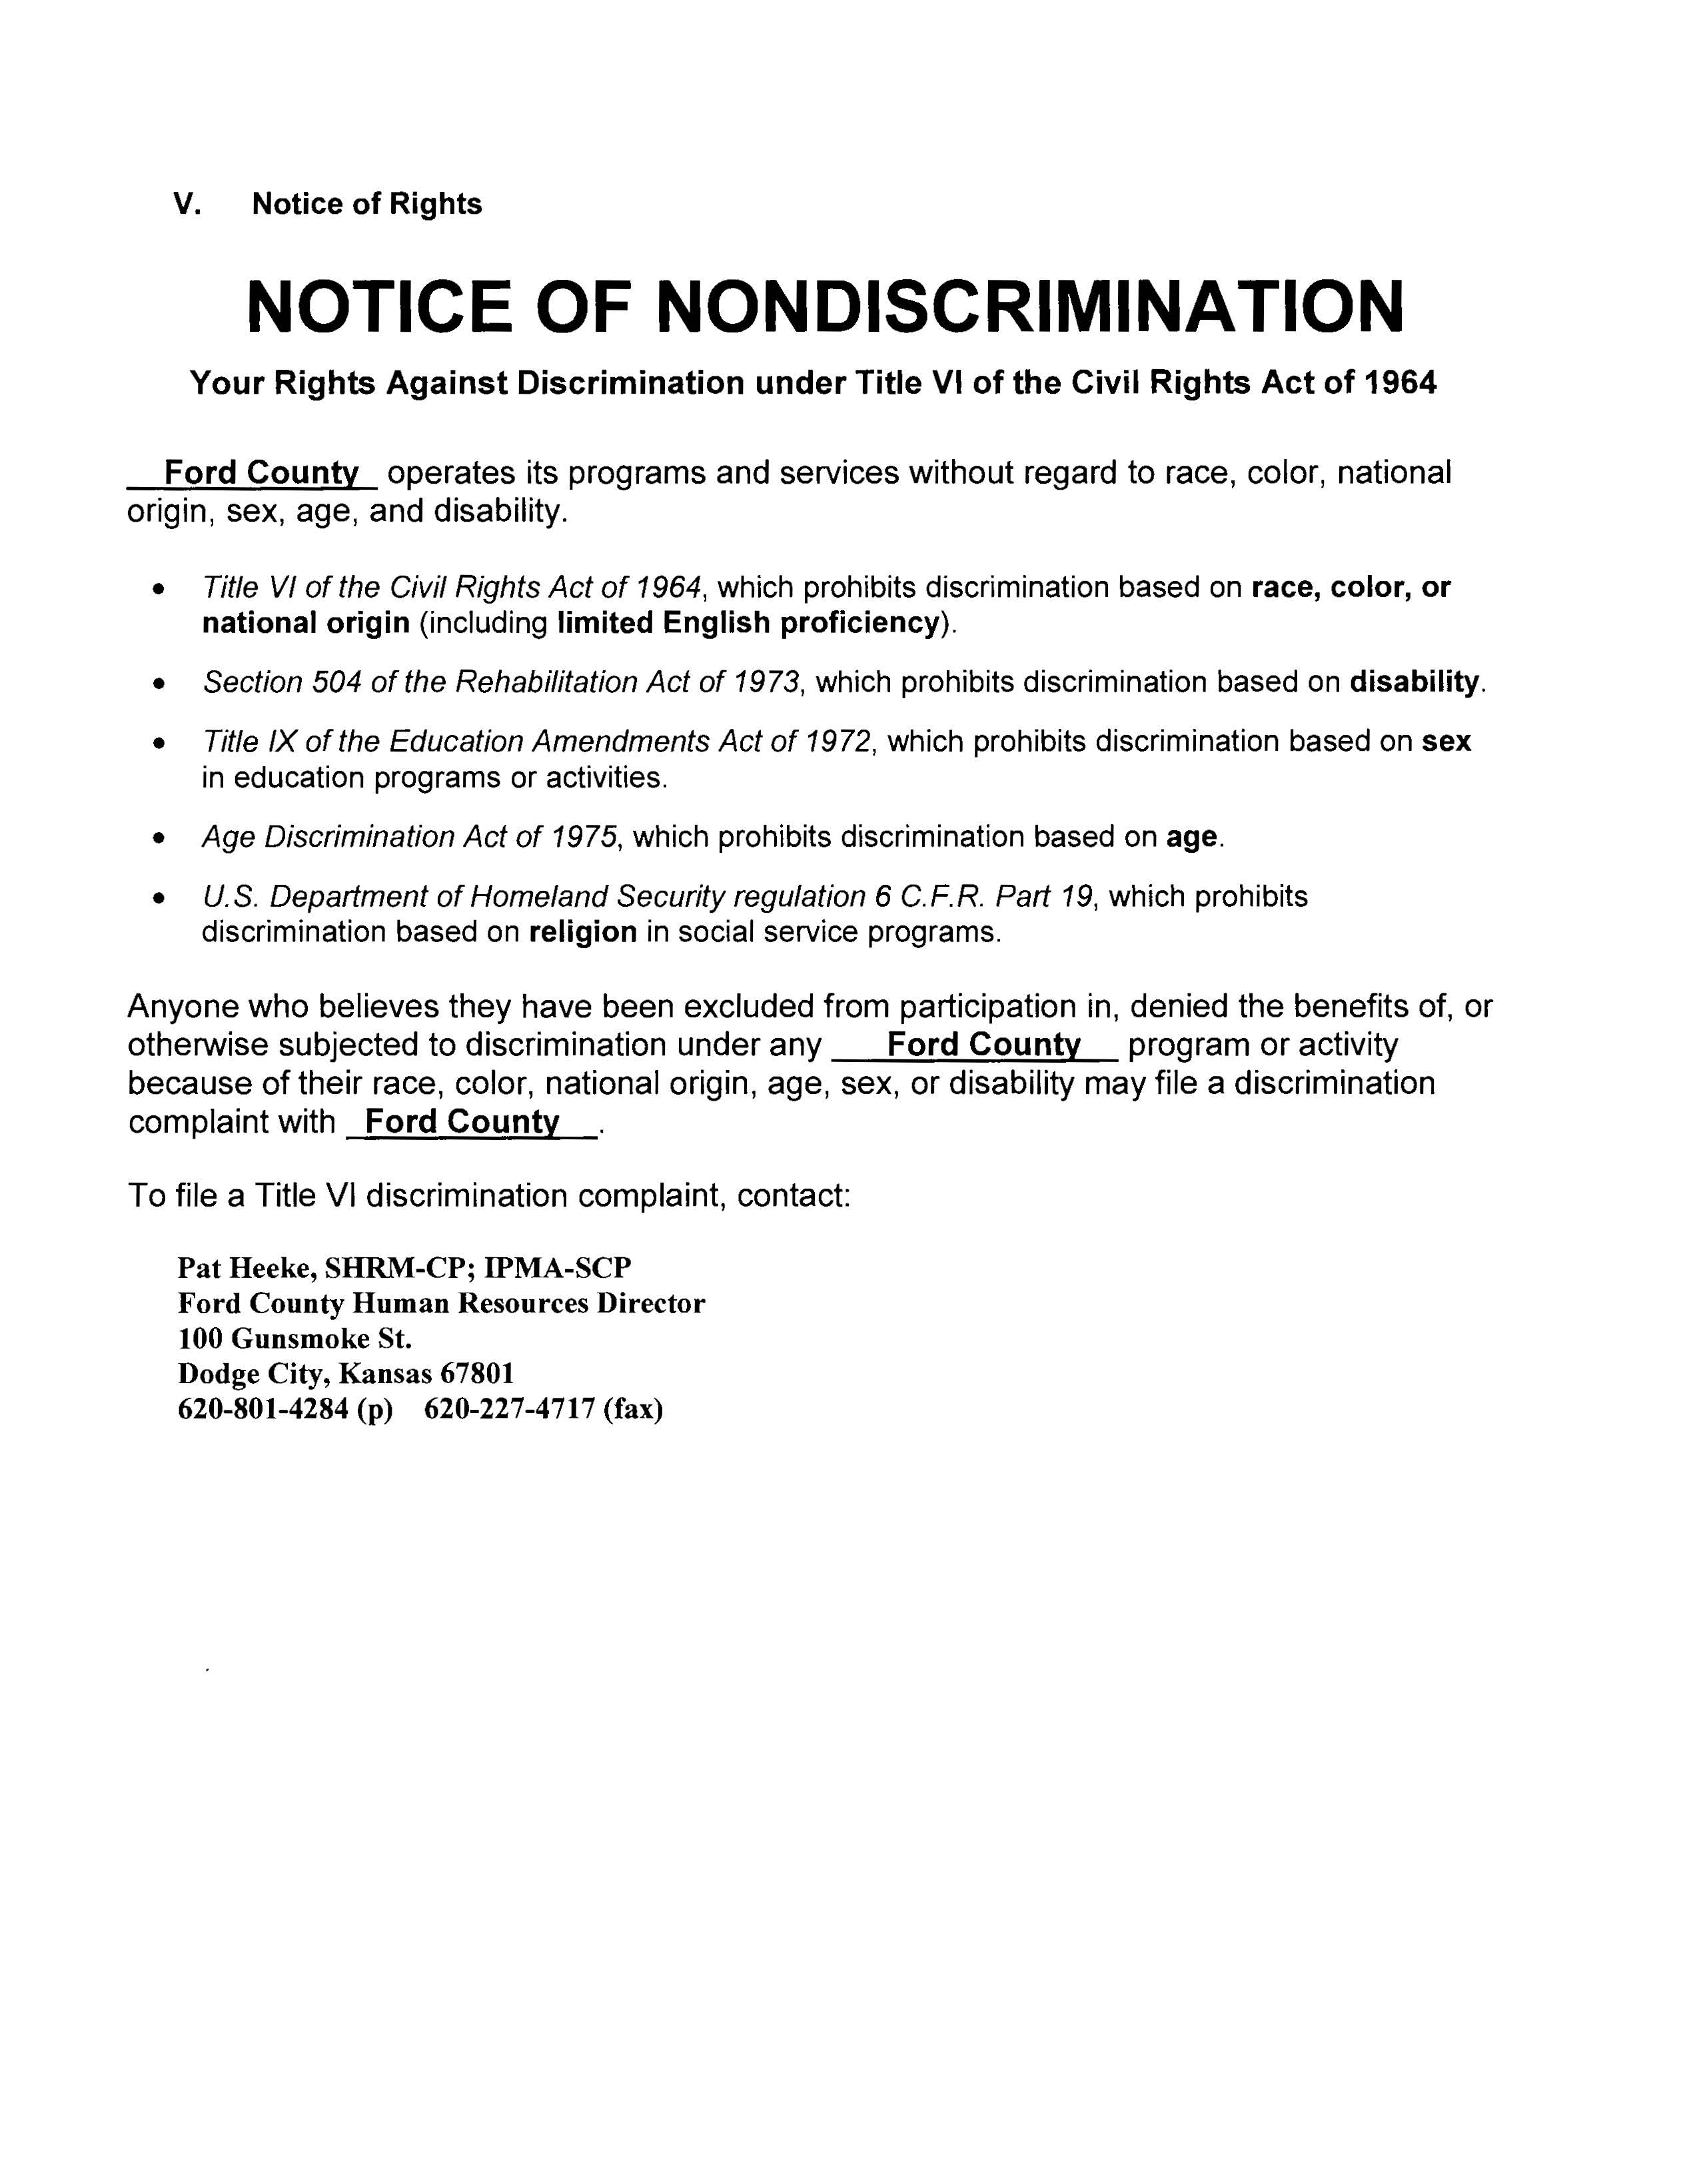 Notice of Nondiscrimination